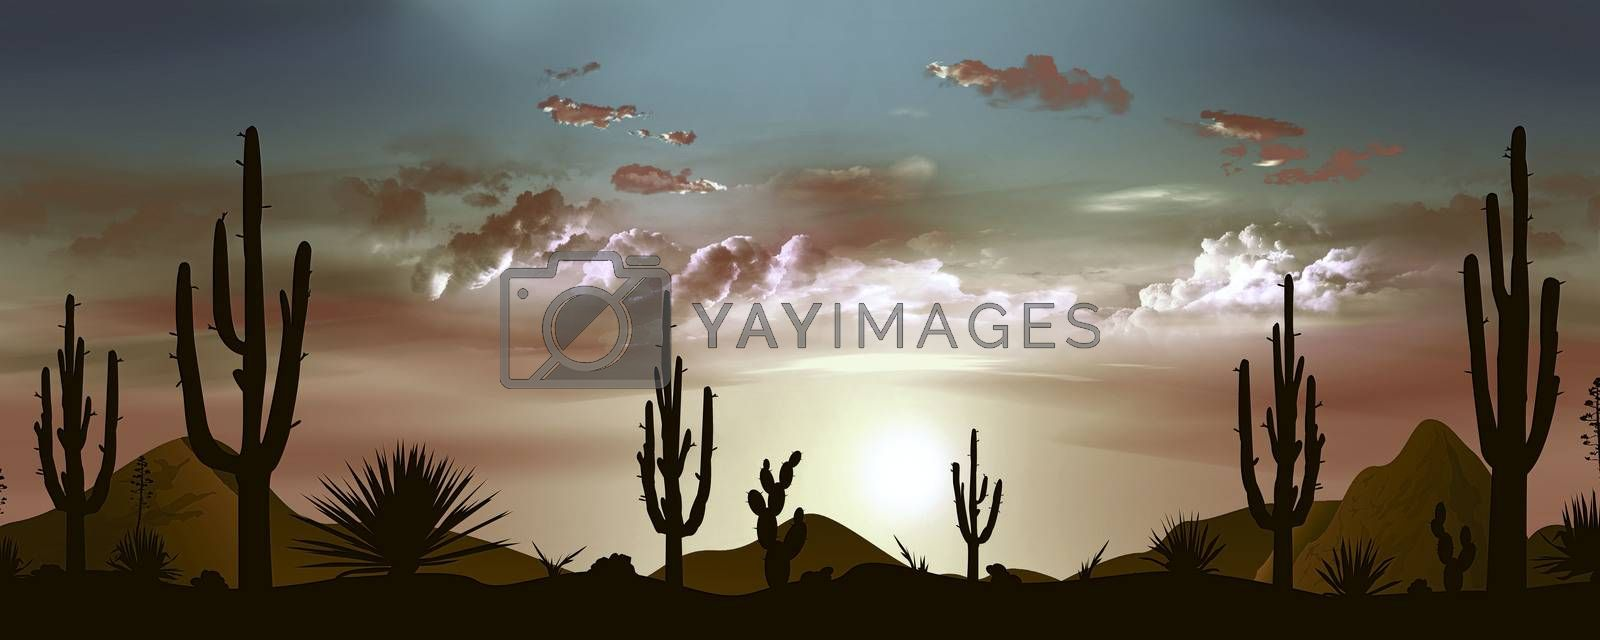 Beautiful Mexican desert landscape in the evening  by liolle